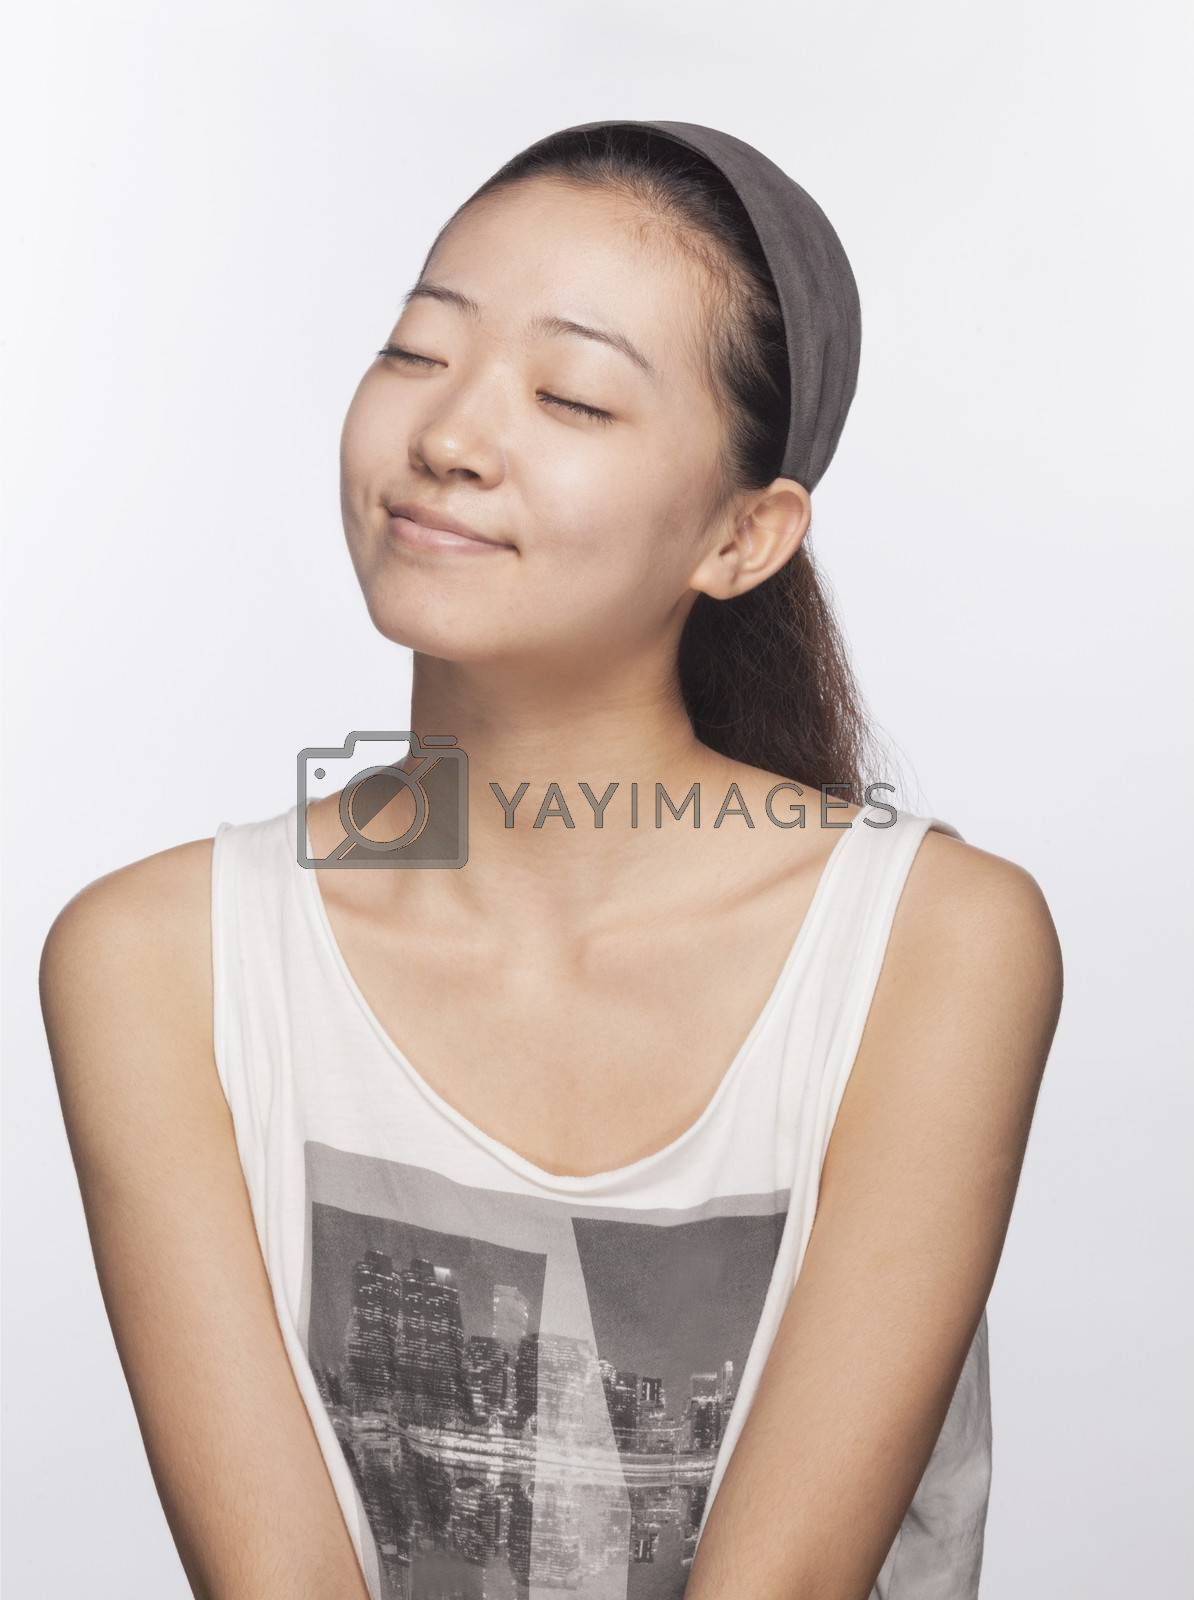 Smiling young woman with eyes closed, studio shot